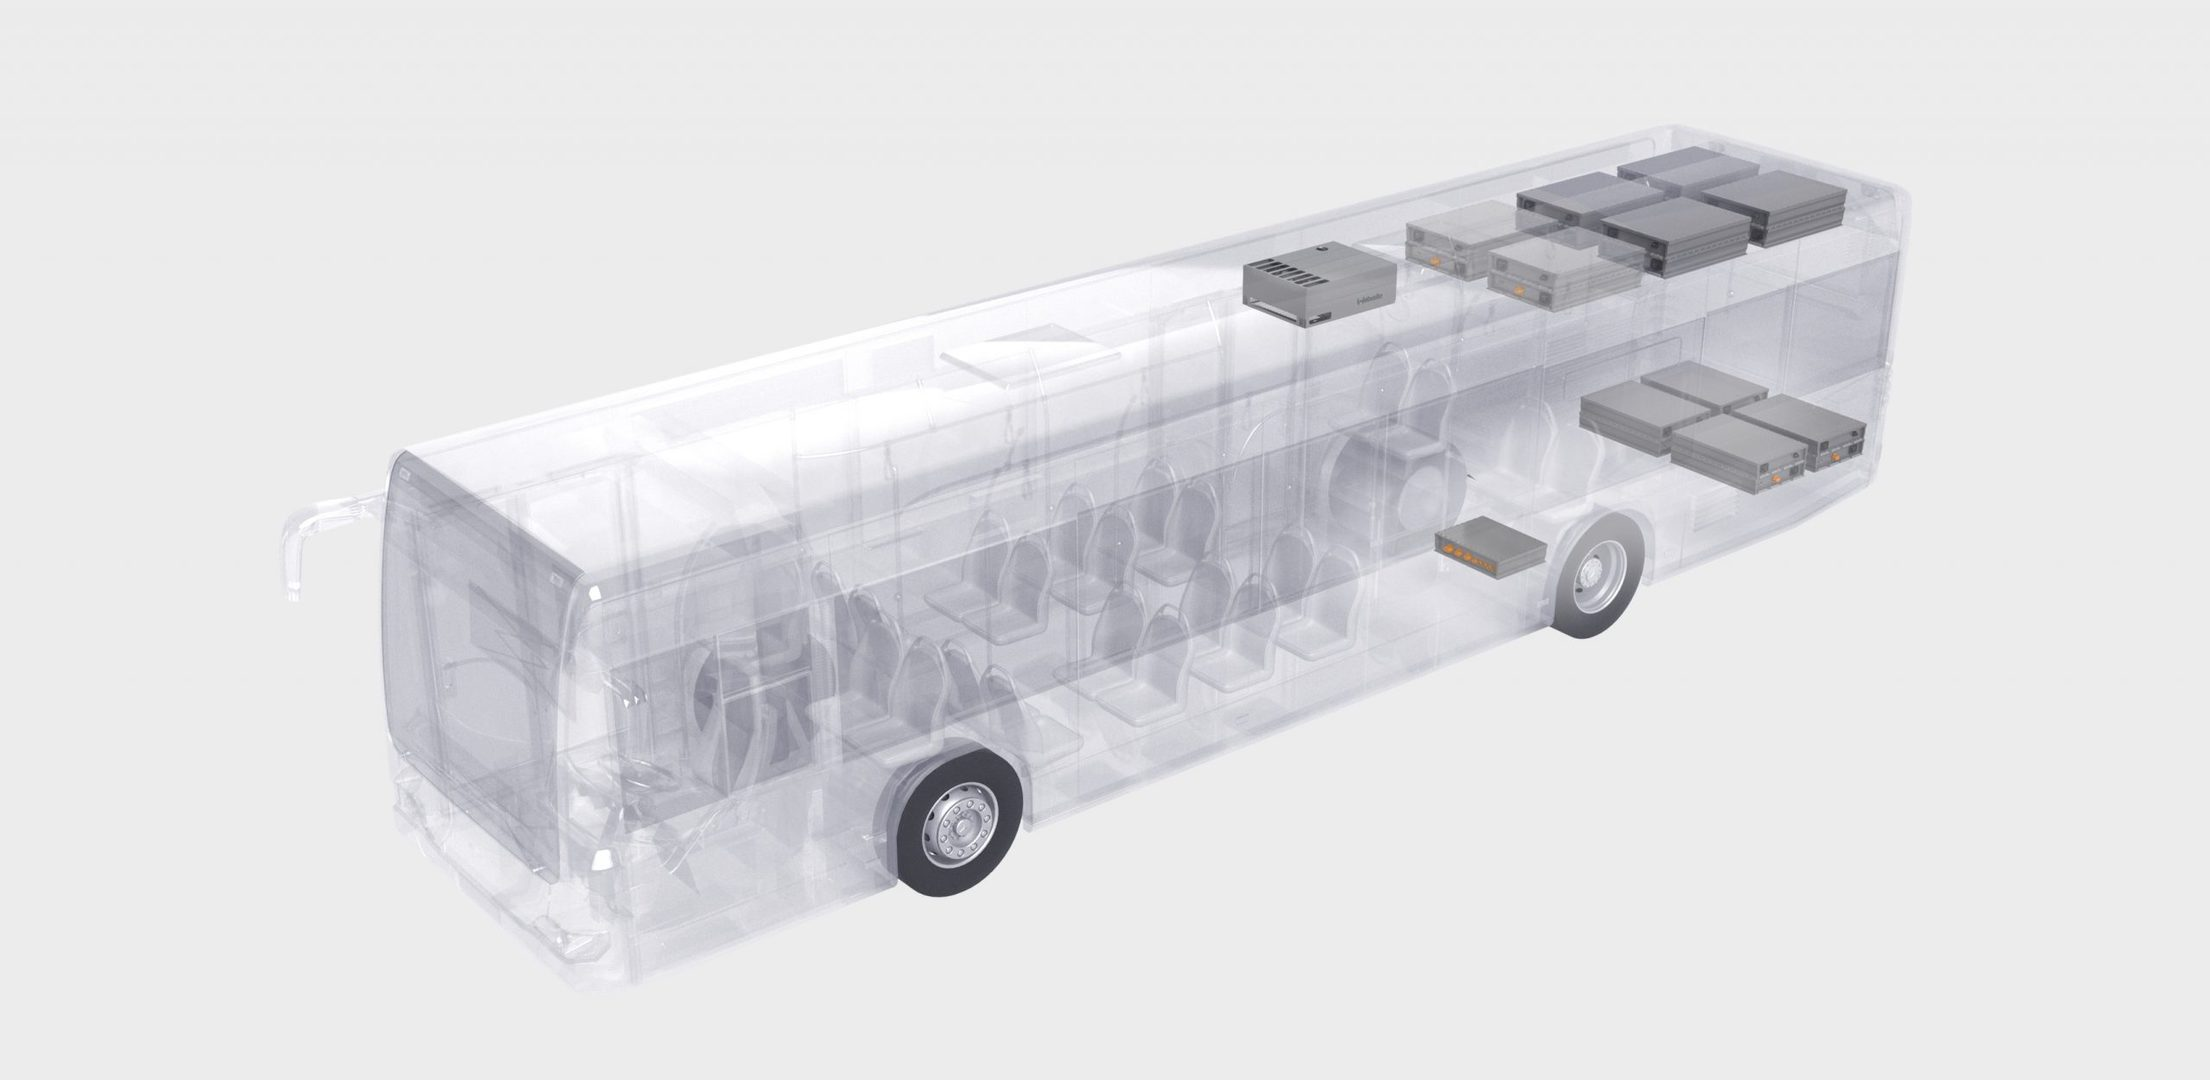 Their compact, energy-dense format makes the battery modules easy for OEM engineers to configure for use on virtually any vehicle platform. Webasto first plans to target the work truck, medium- and heavy-duty truck and bus markets.